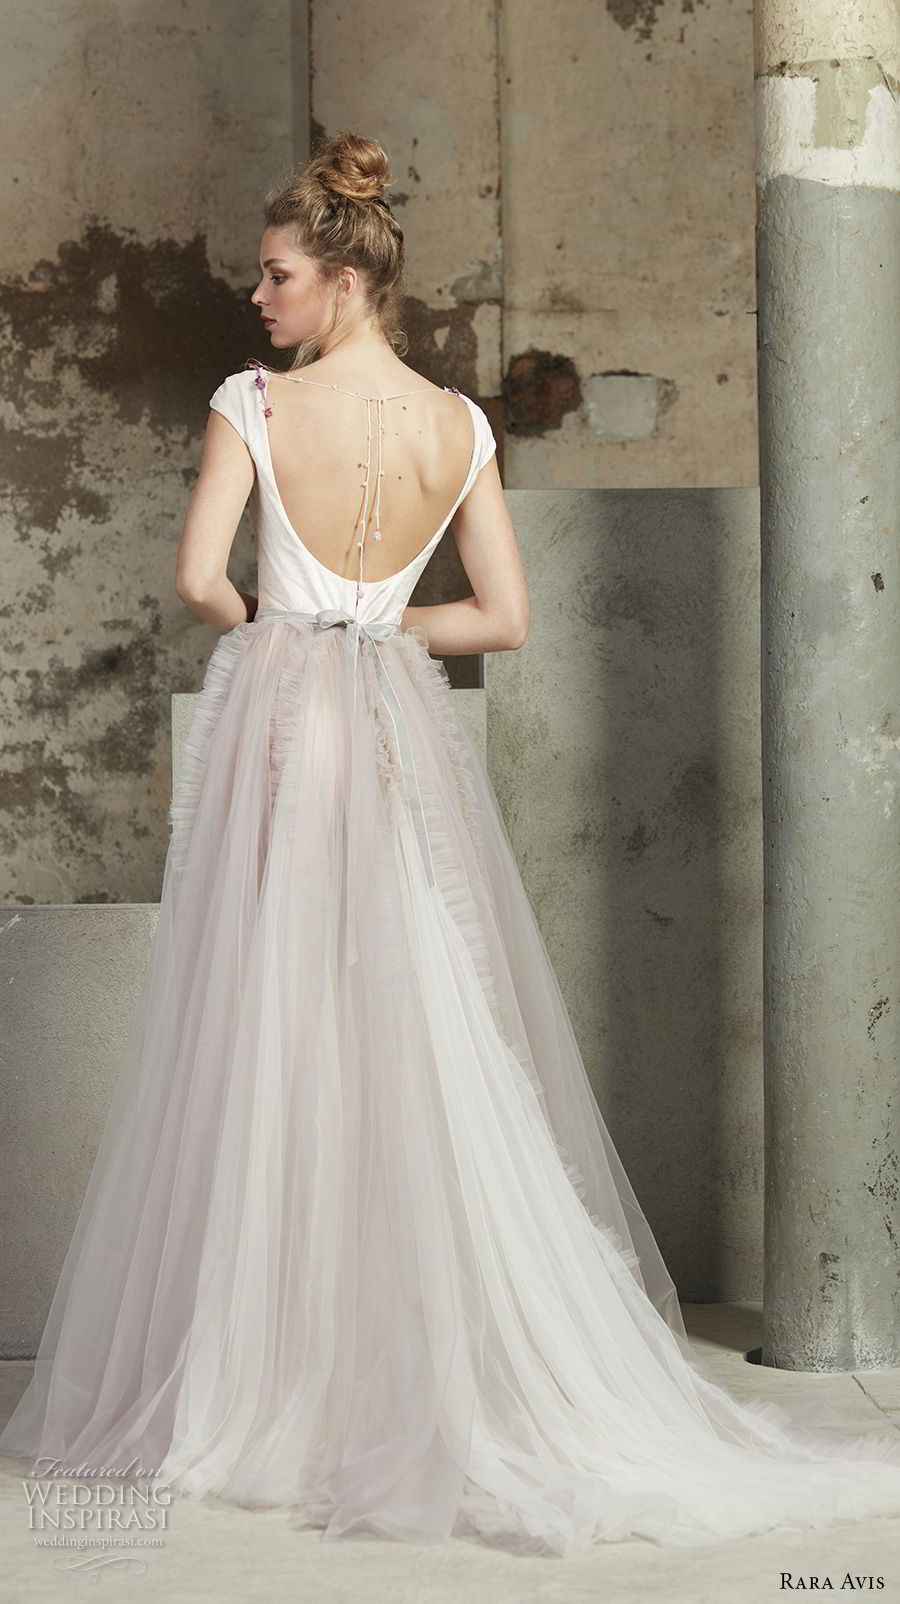 rara avis 2017 bridal cap sleeves scoop neckline unembellished bodice blush tulle skirt romantic a line wedding dress open scoop back medium train (24) bv